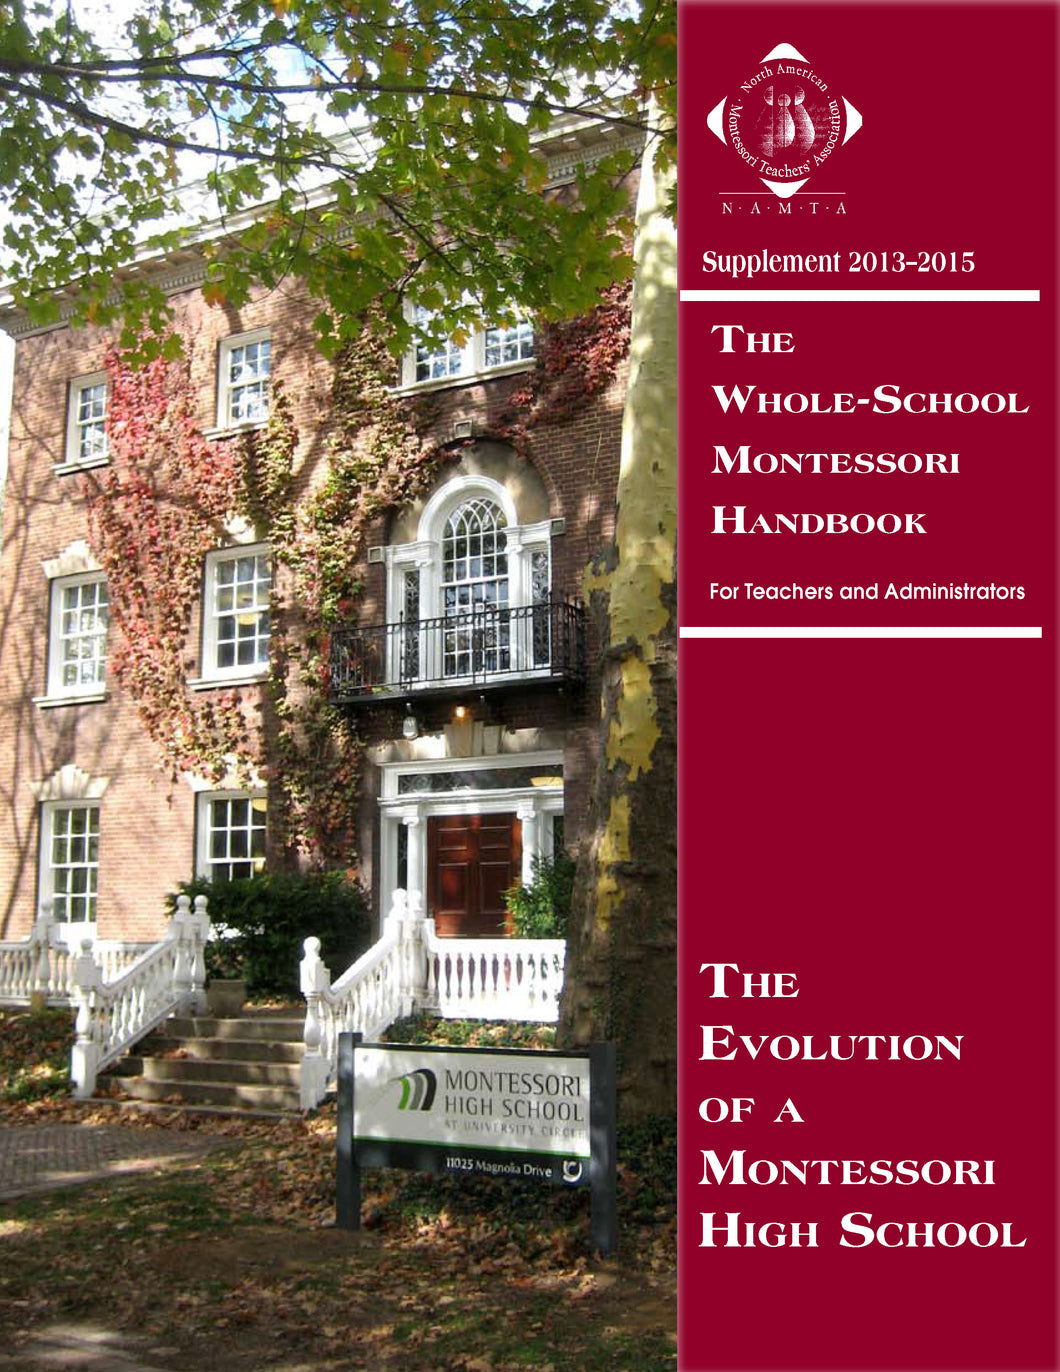 Whole School Handbook, Supplement 2013-15